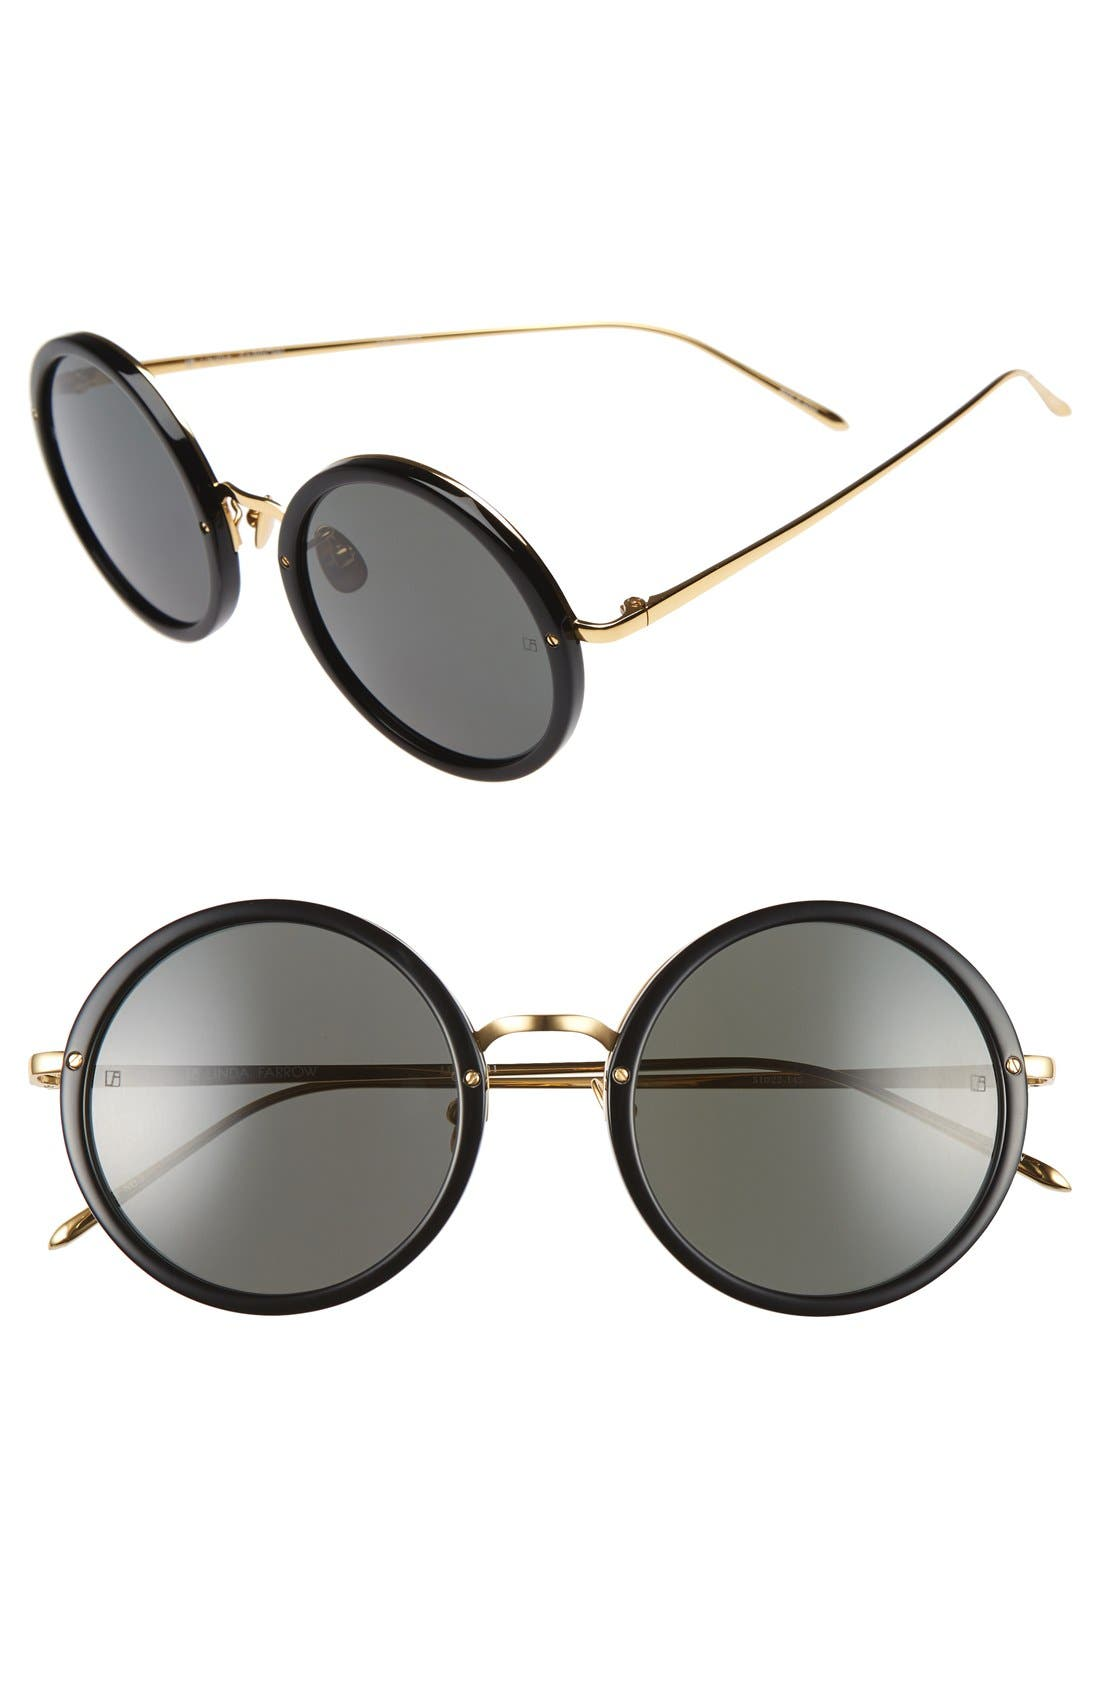 51mm Round 24 Karat Gold Trim Sunglasses,                             Main thumbnail 1, color,